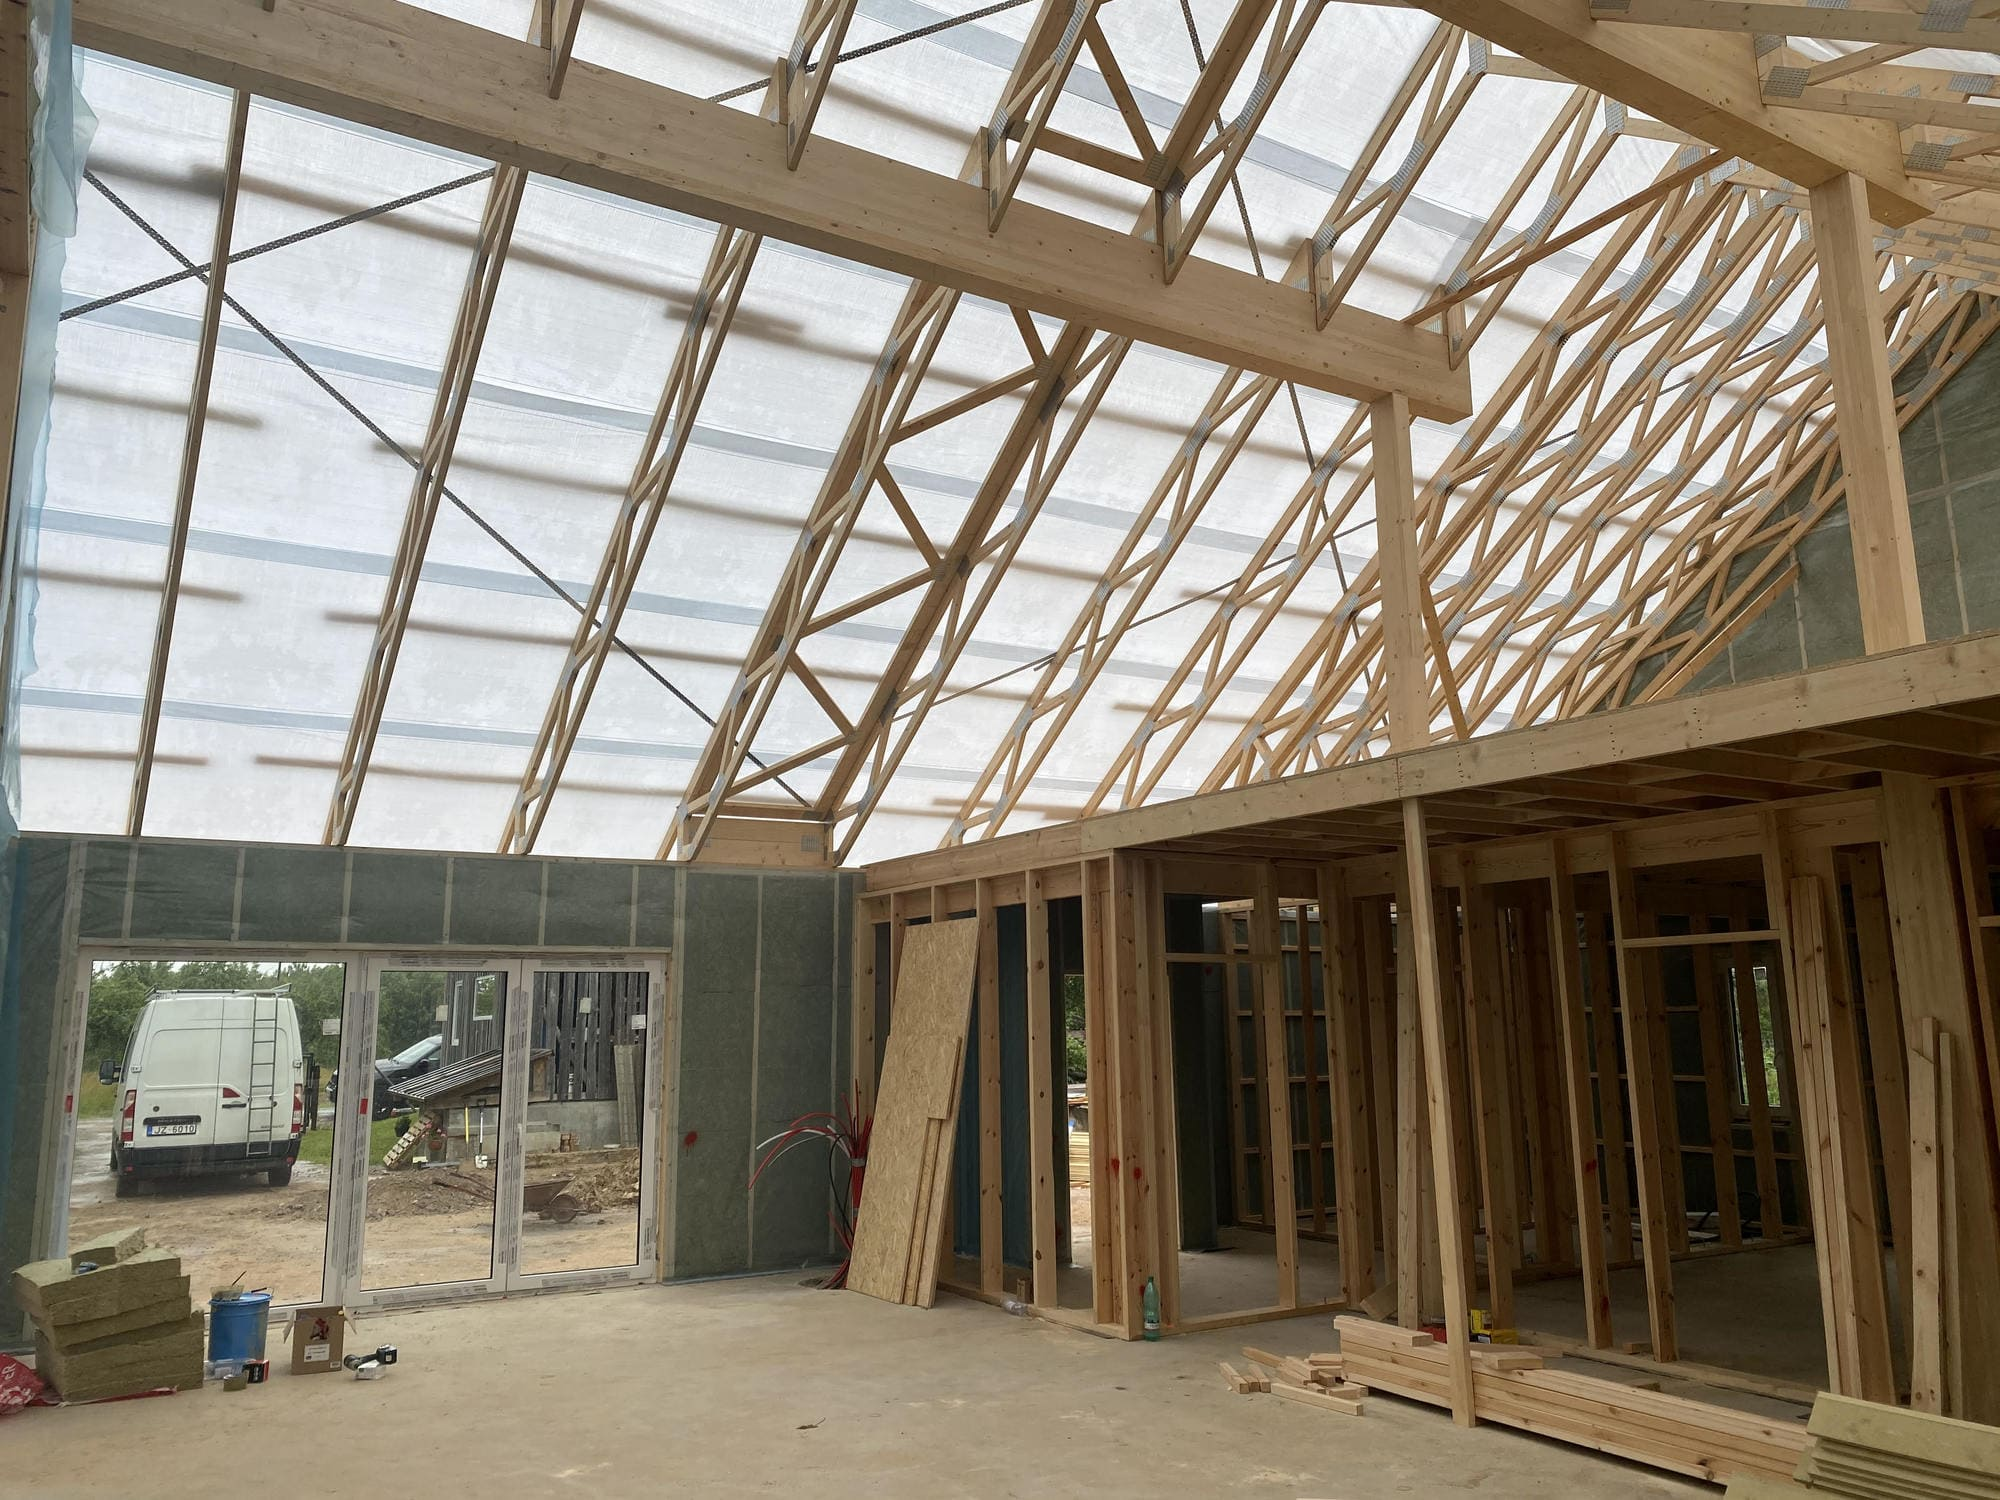 Wooden frame houses have different roof configurations